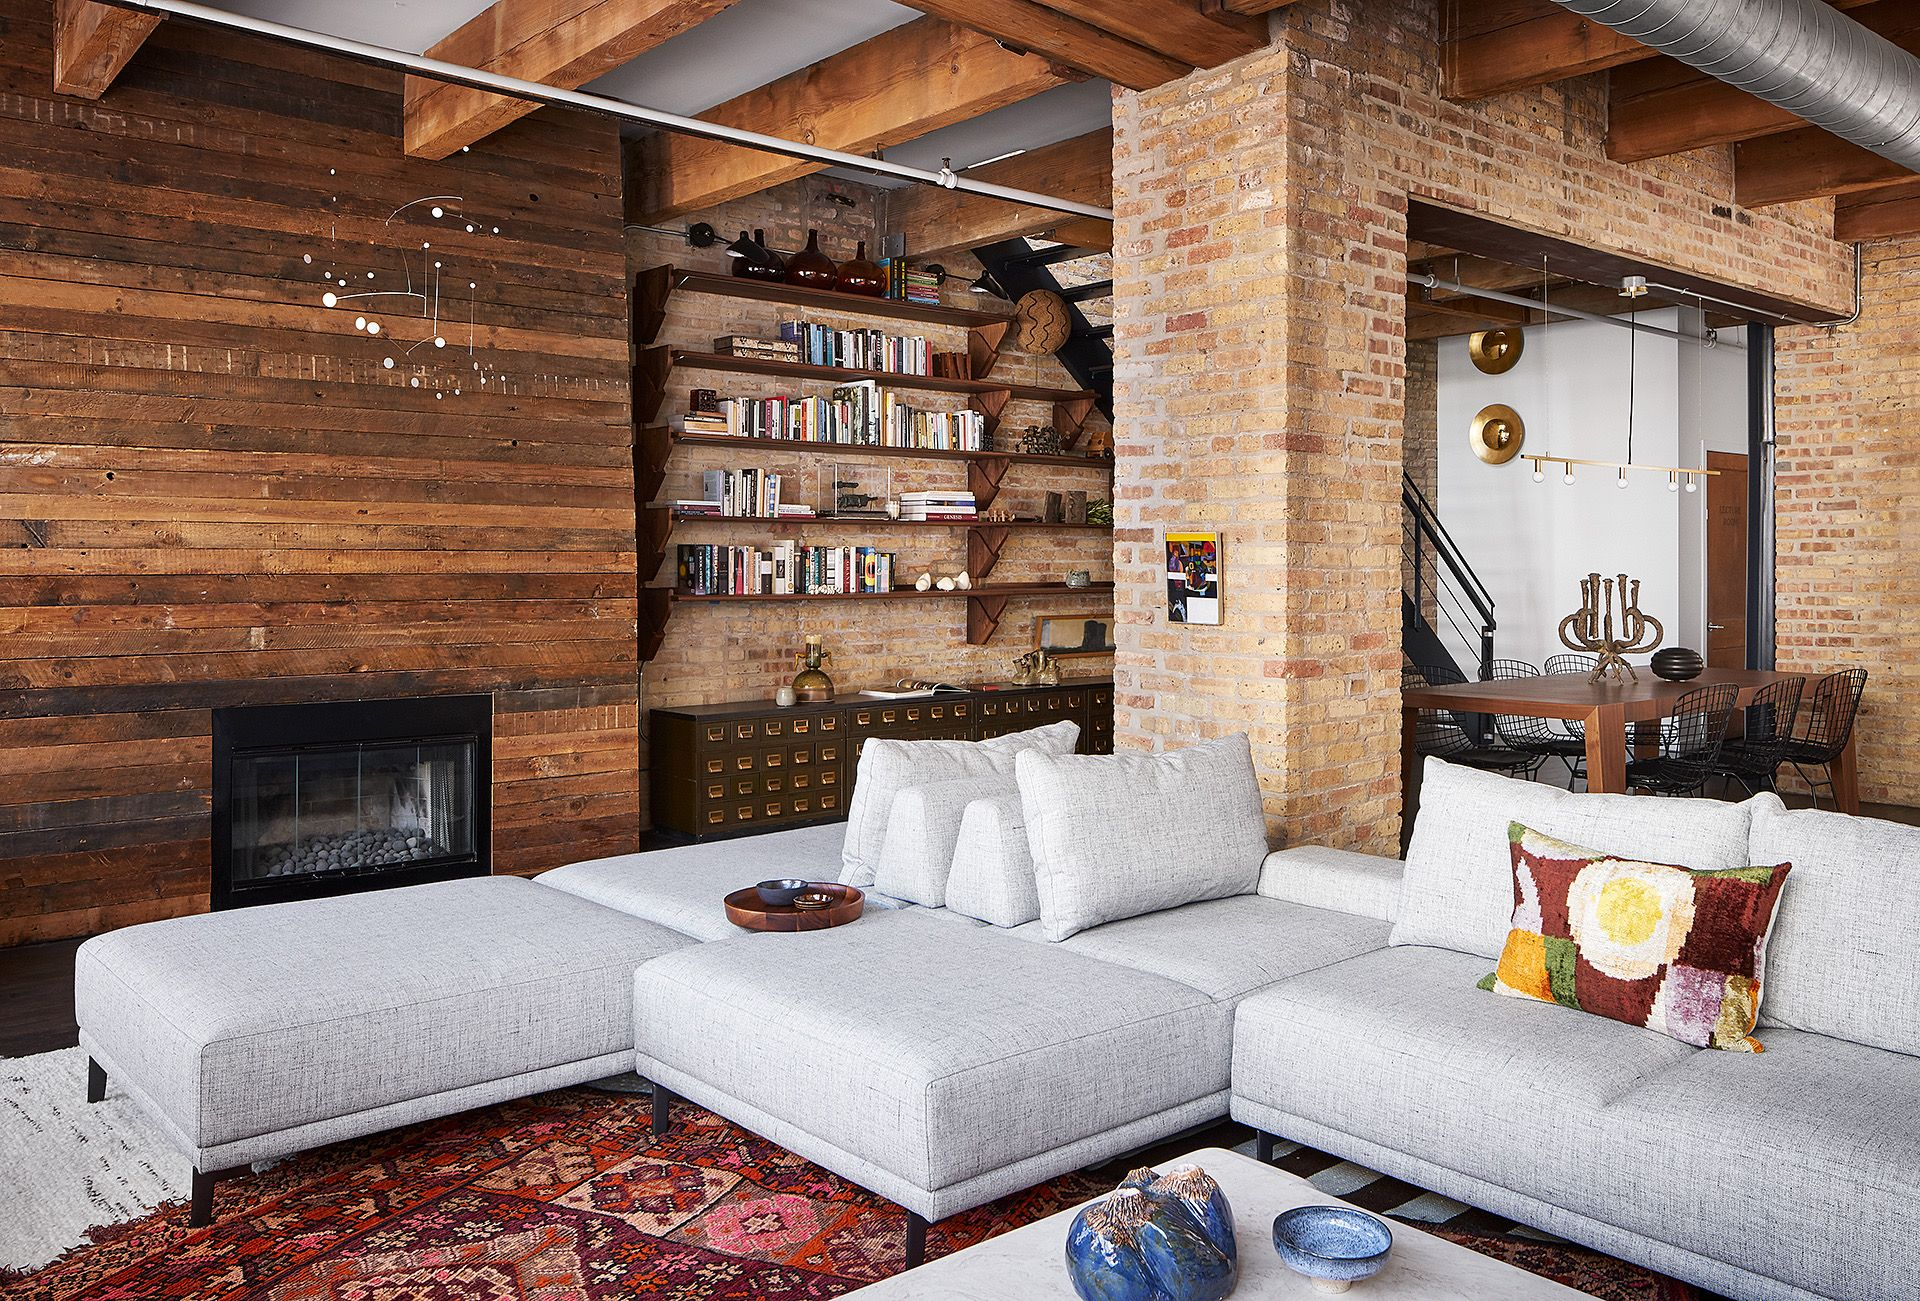 Industrial Design Tips How To Add Warmth To An Industrial Design